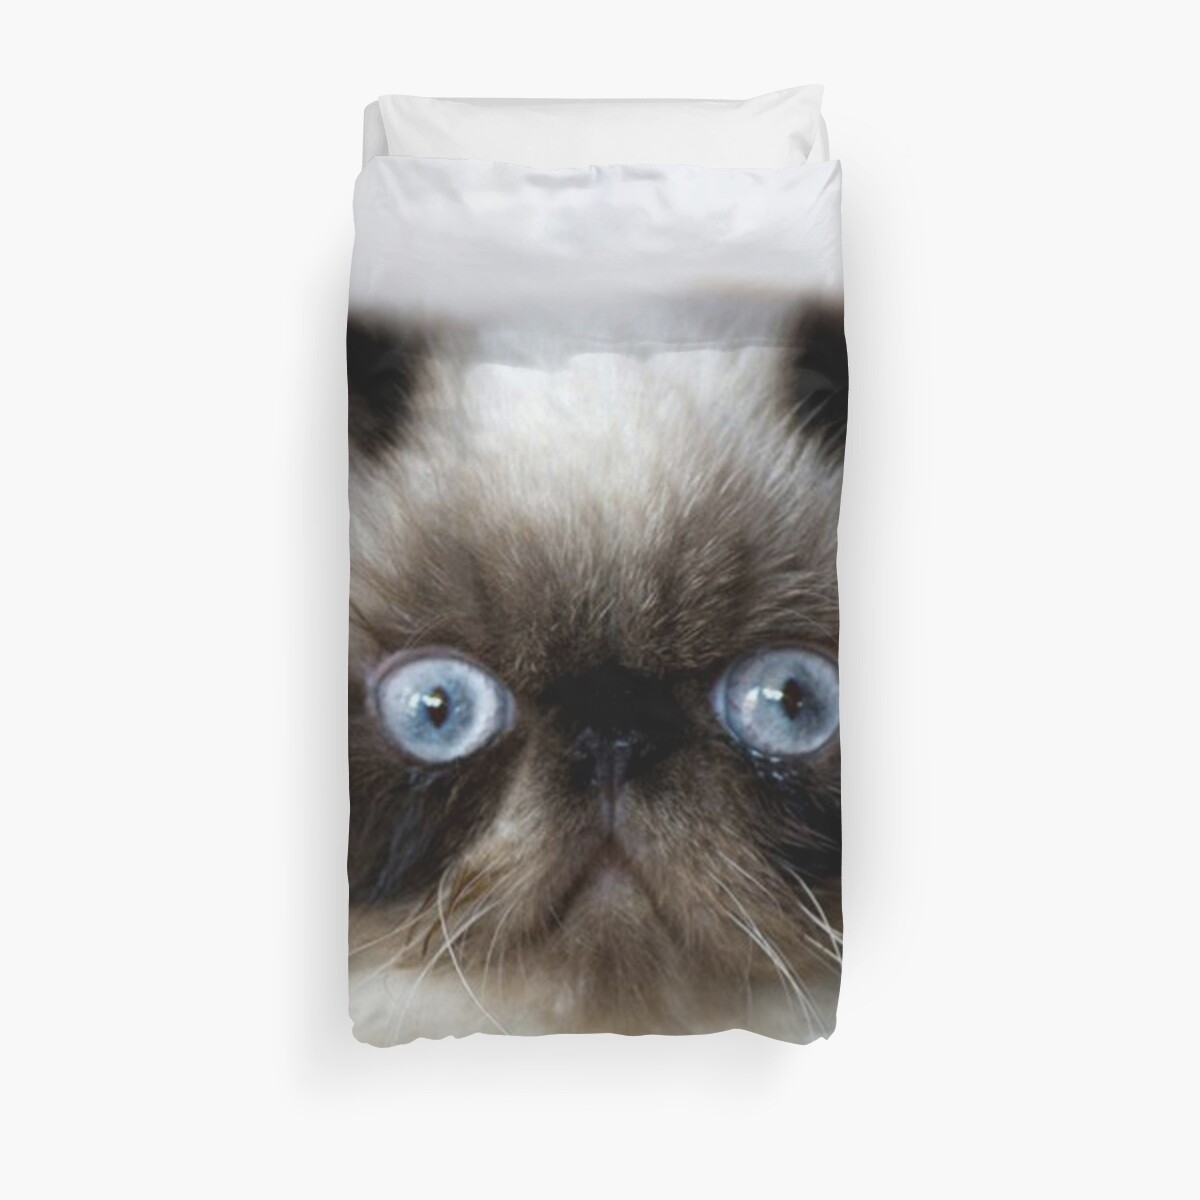 Grappige Dekbedovertrekken Quotfunny Cat Quot Duvet Covers By Erika Kaisersot Redbubble